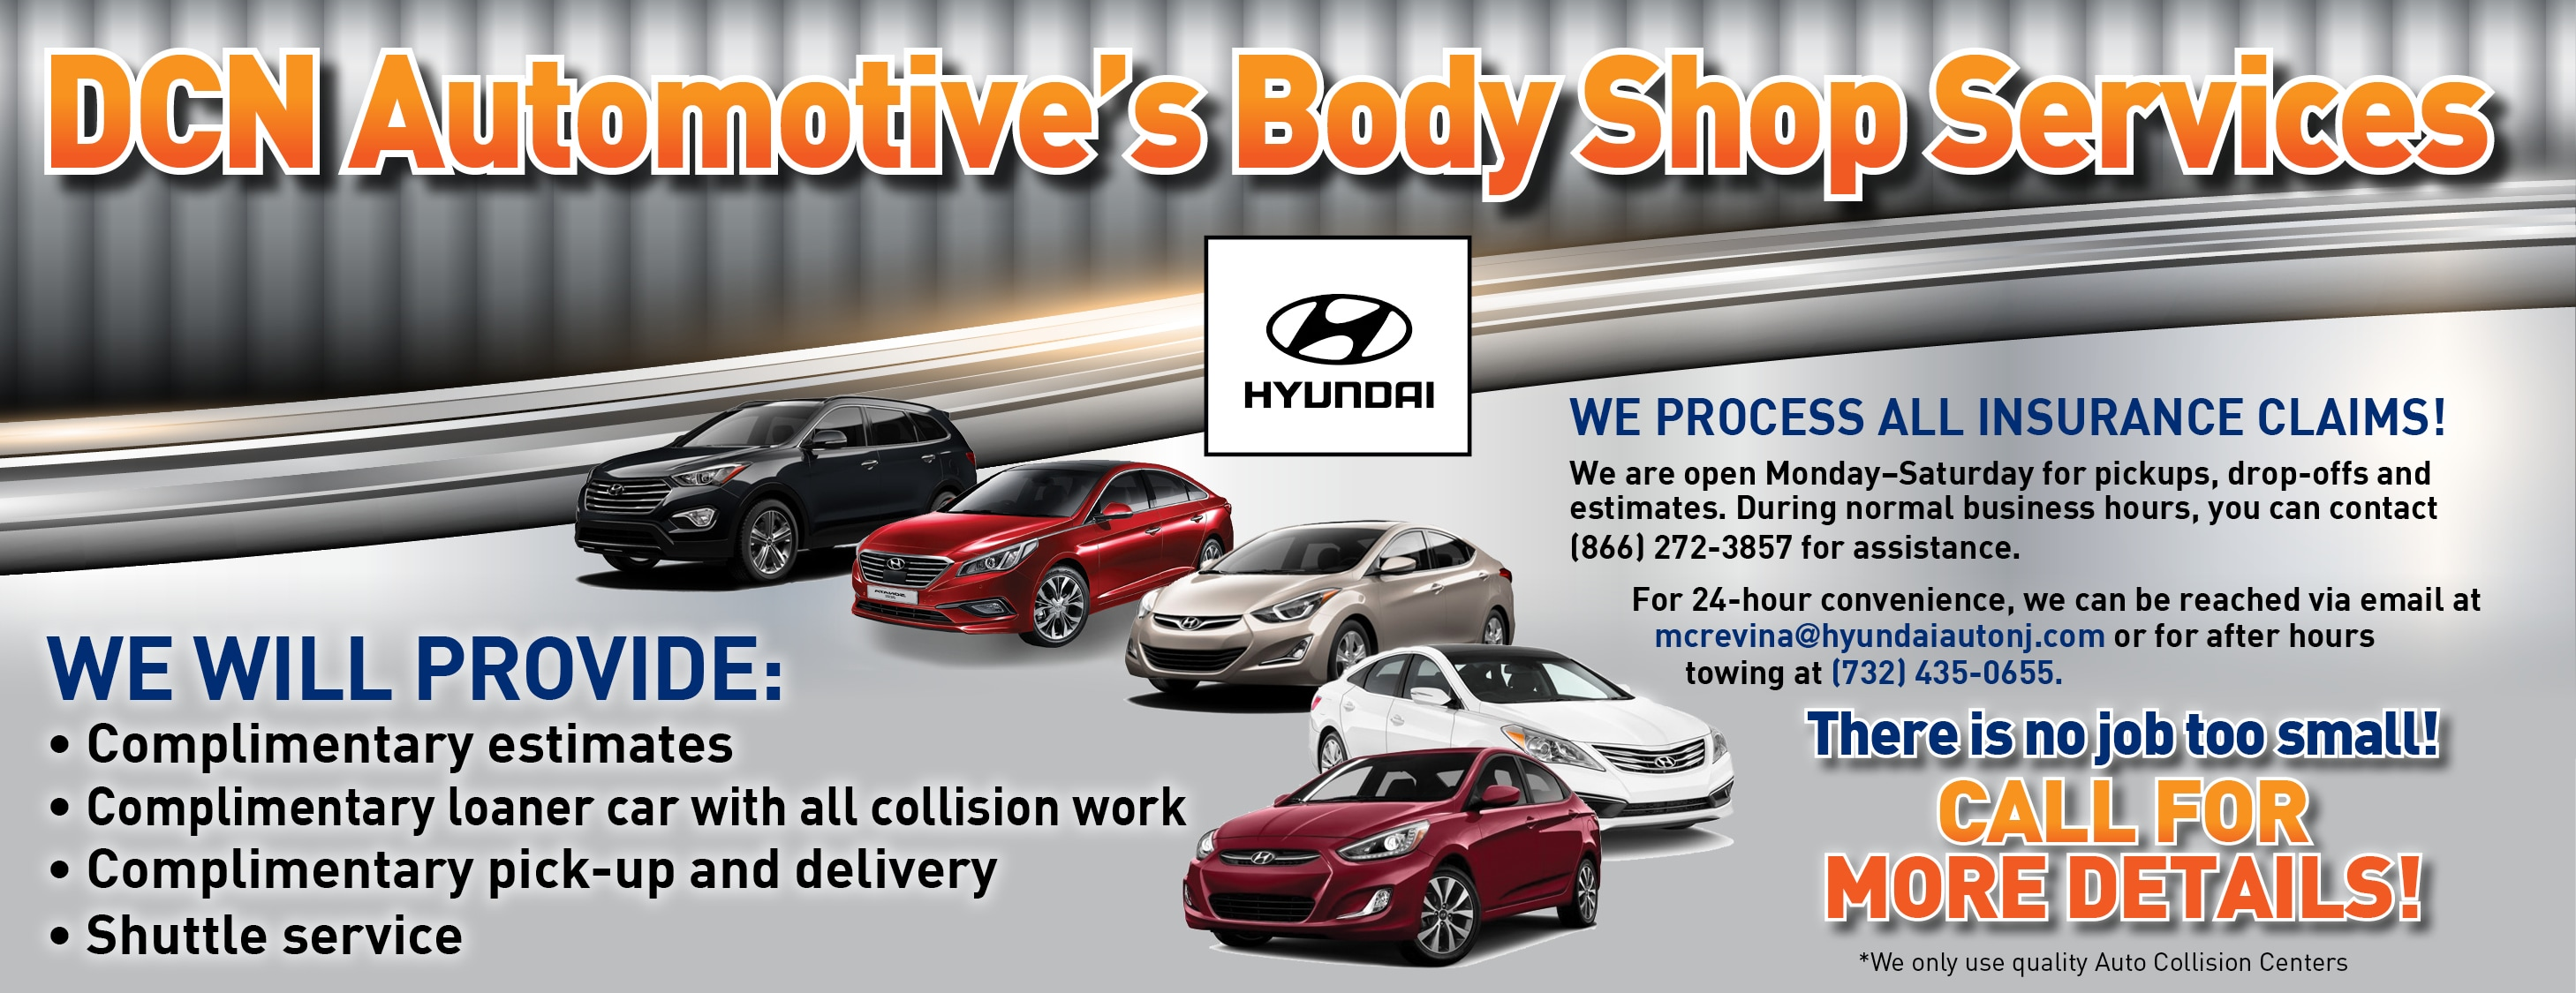 DCN Automotive Collision Services